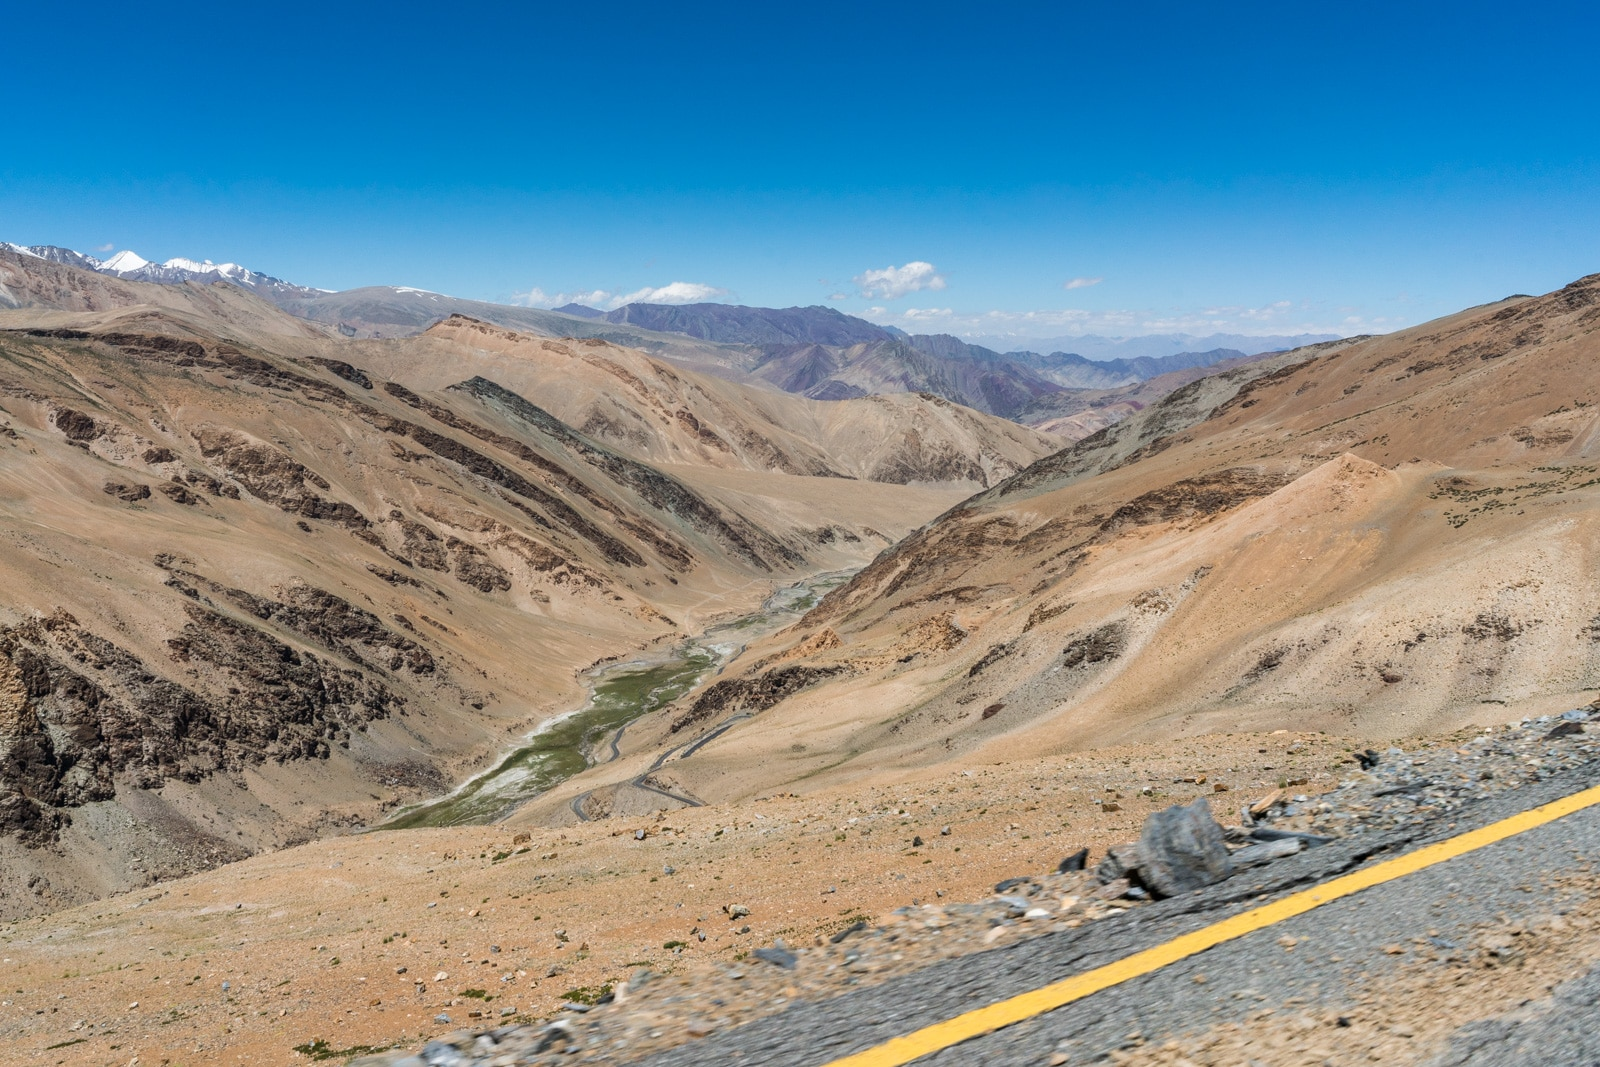 Hitchhiking the Leh - Manali highway - Views from Tanglang La pass - Lost With Purpose travel blog